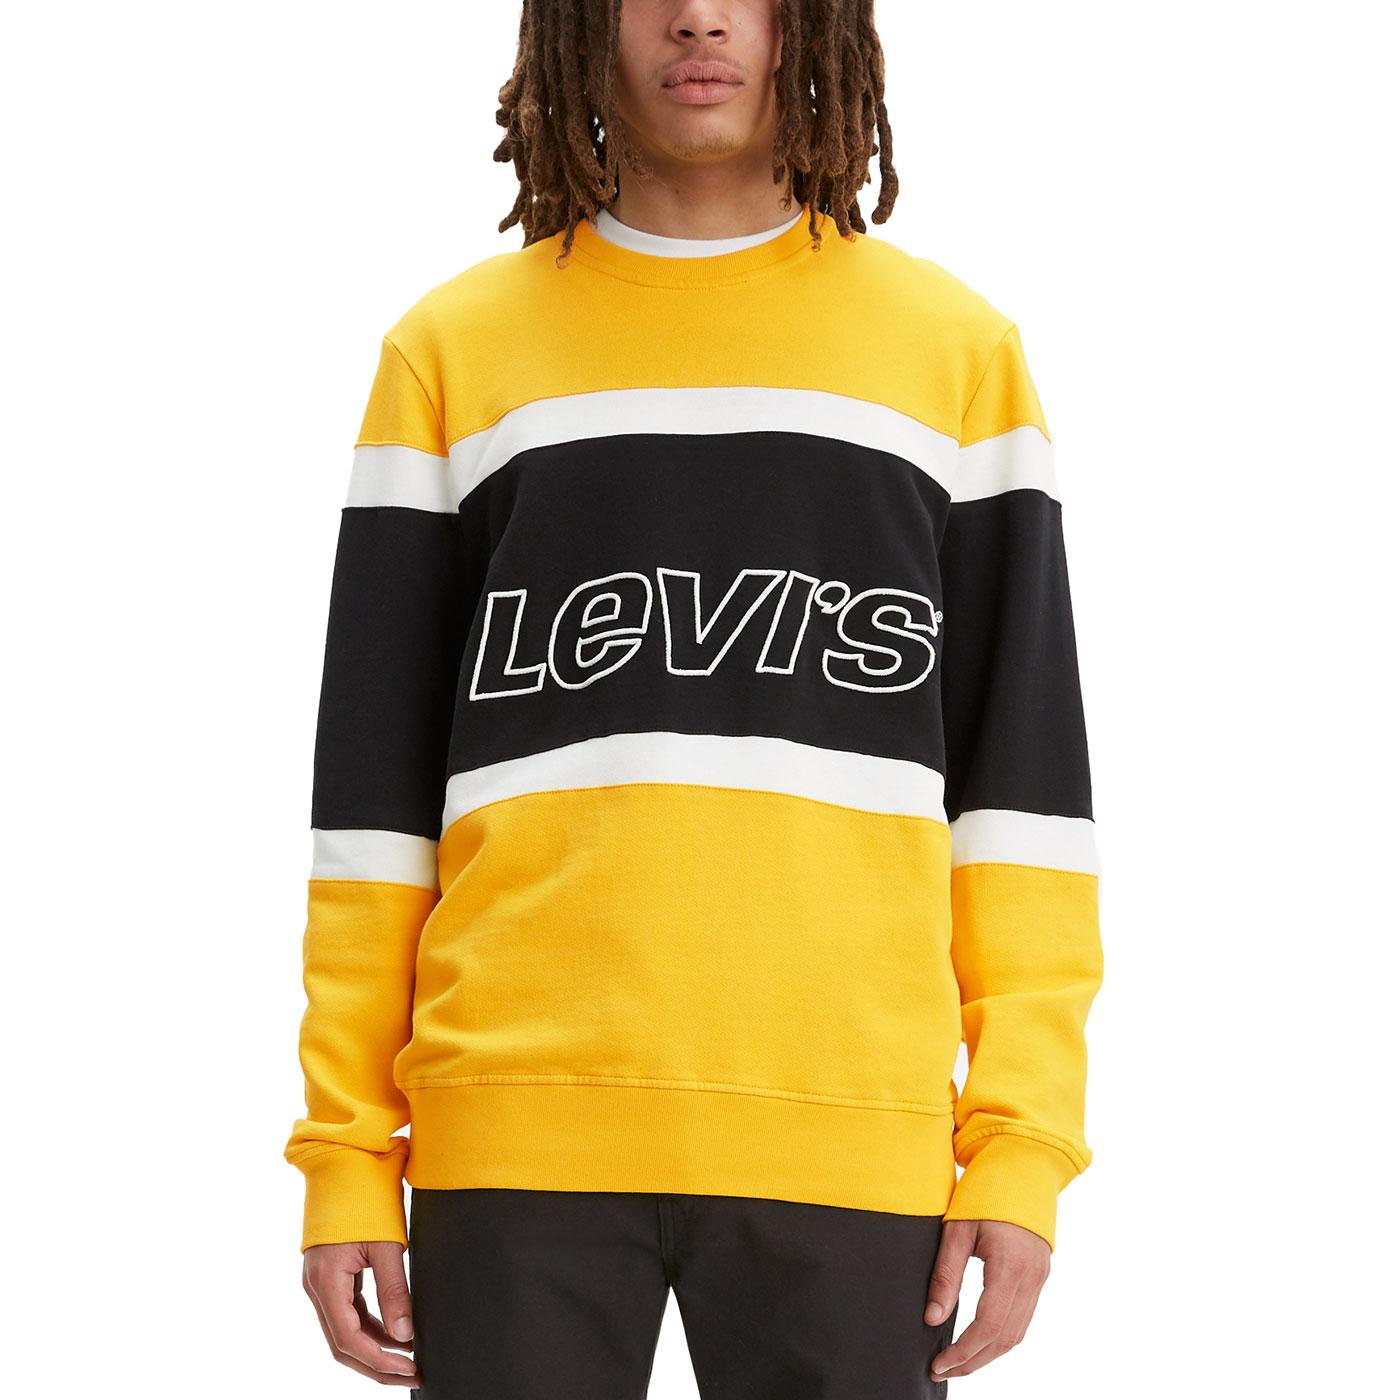 LEVI'S Retro Indie Colour Block Sweatshirt Y/B